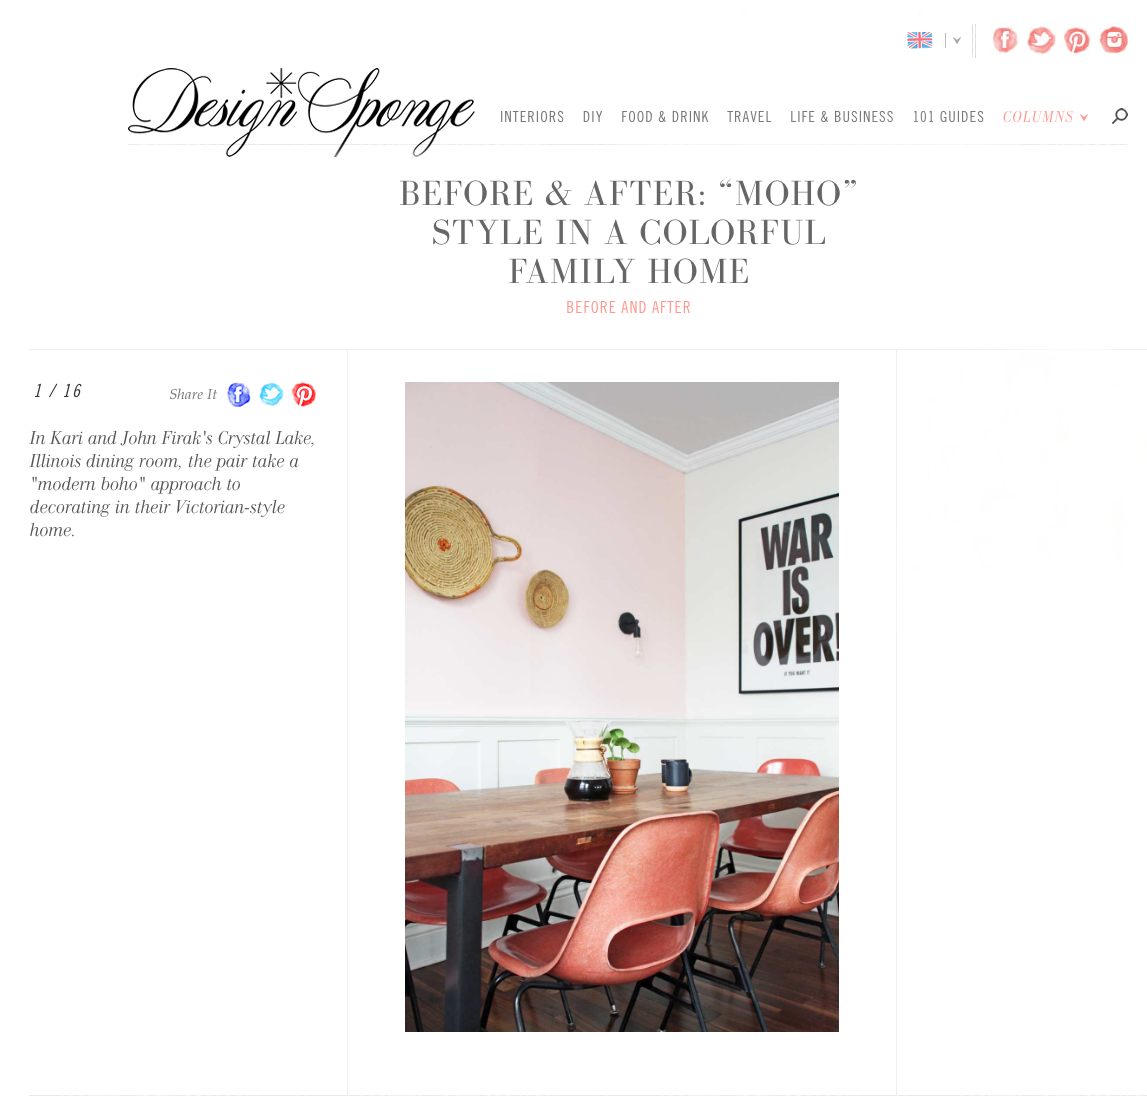 Check out my house tour on Design Sponge!